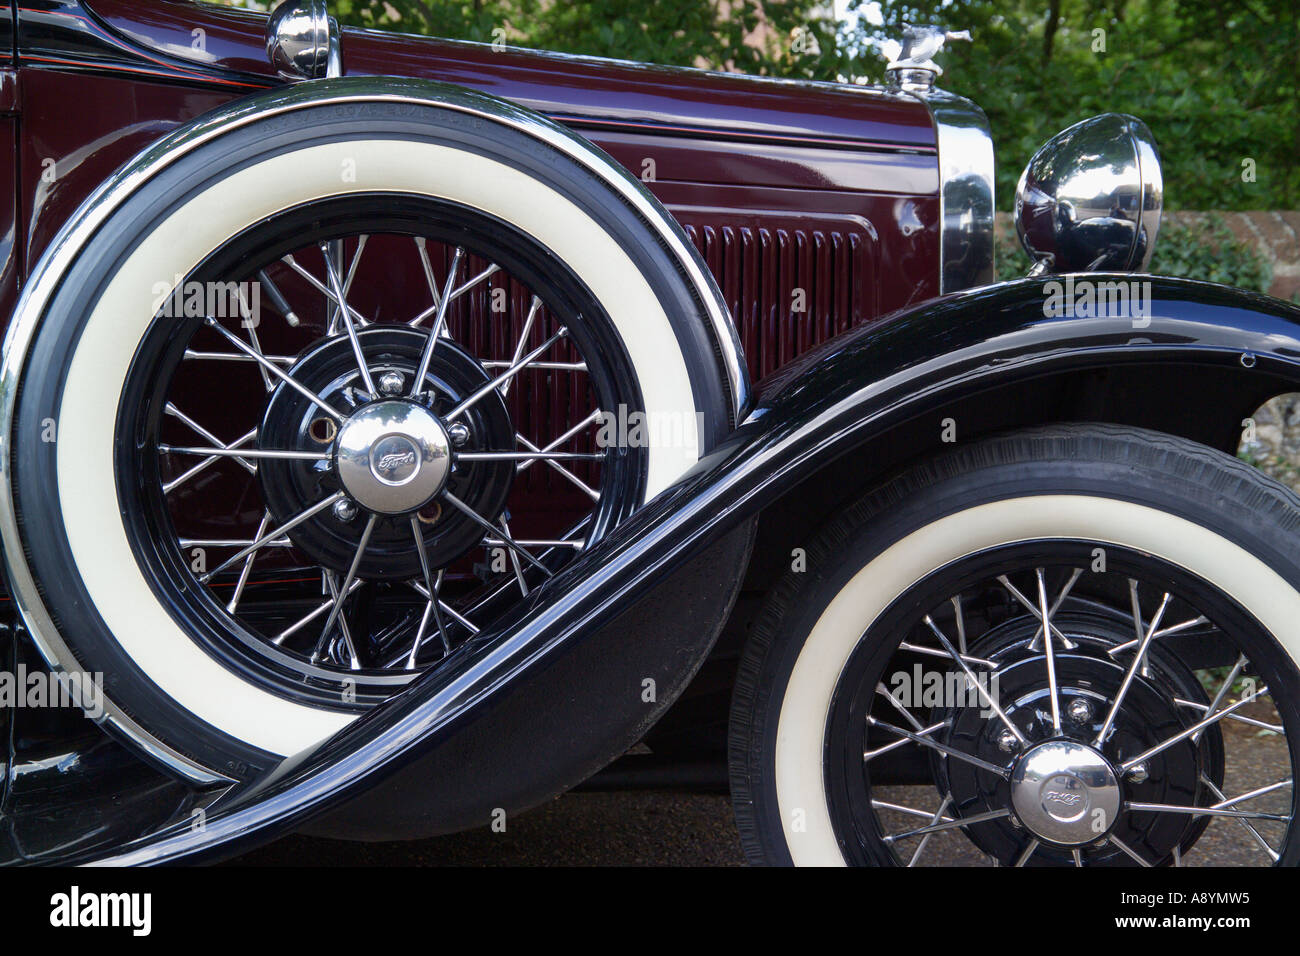 1930 Ford A Classic Car - Stock Image